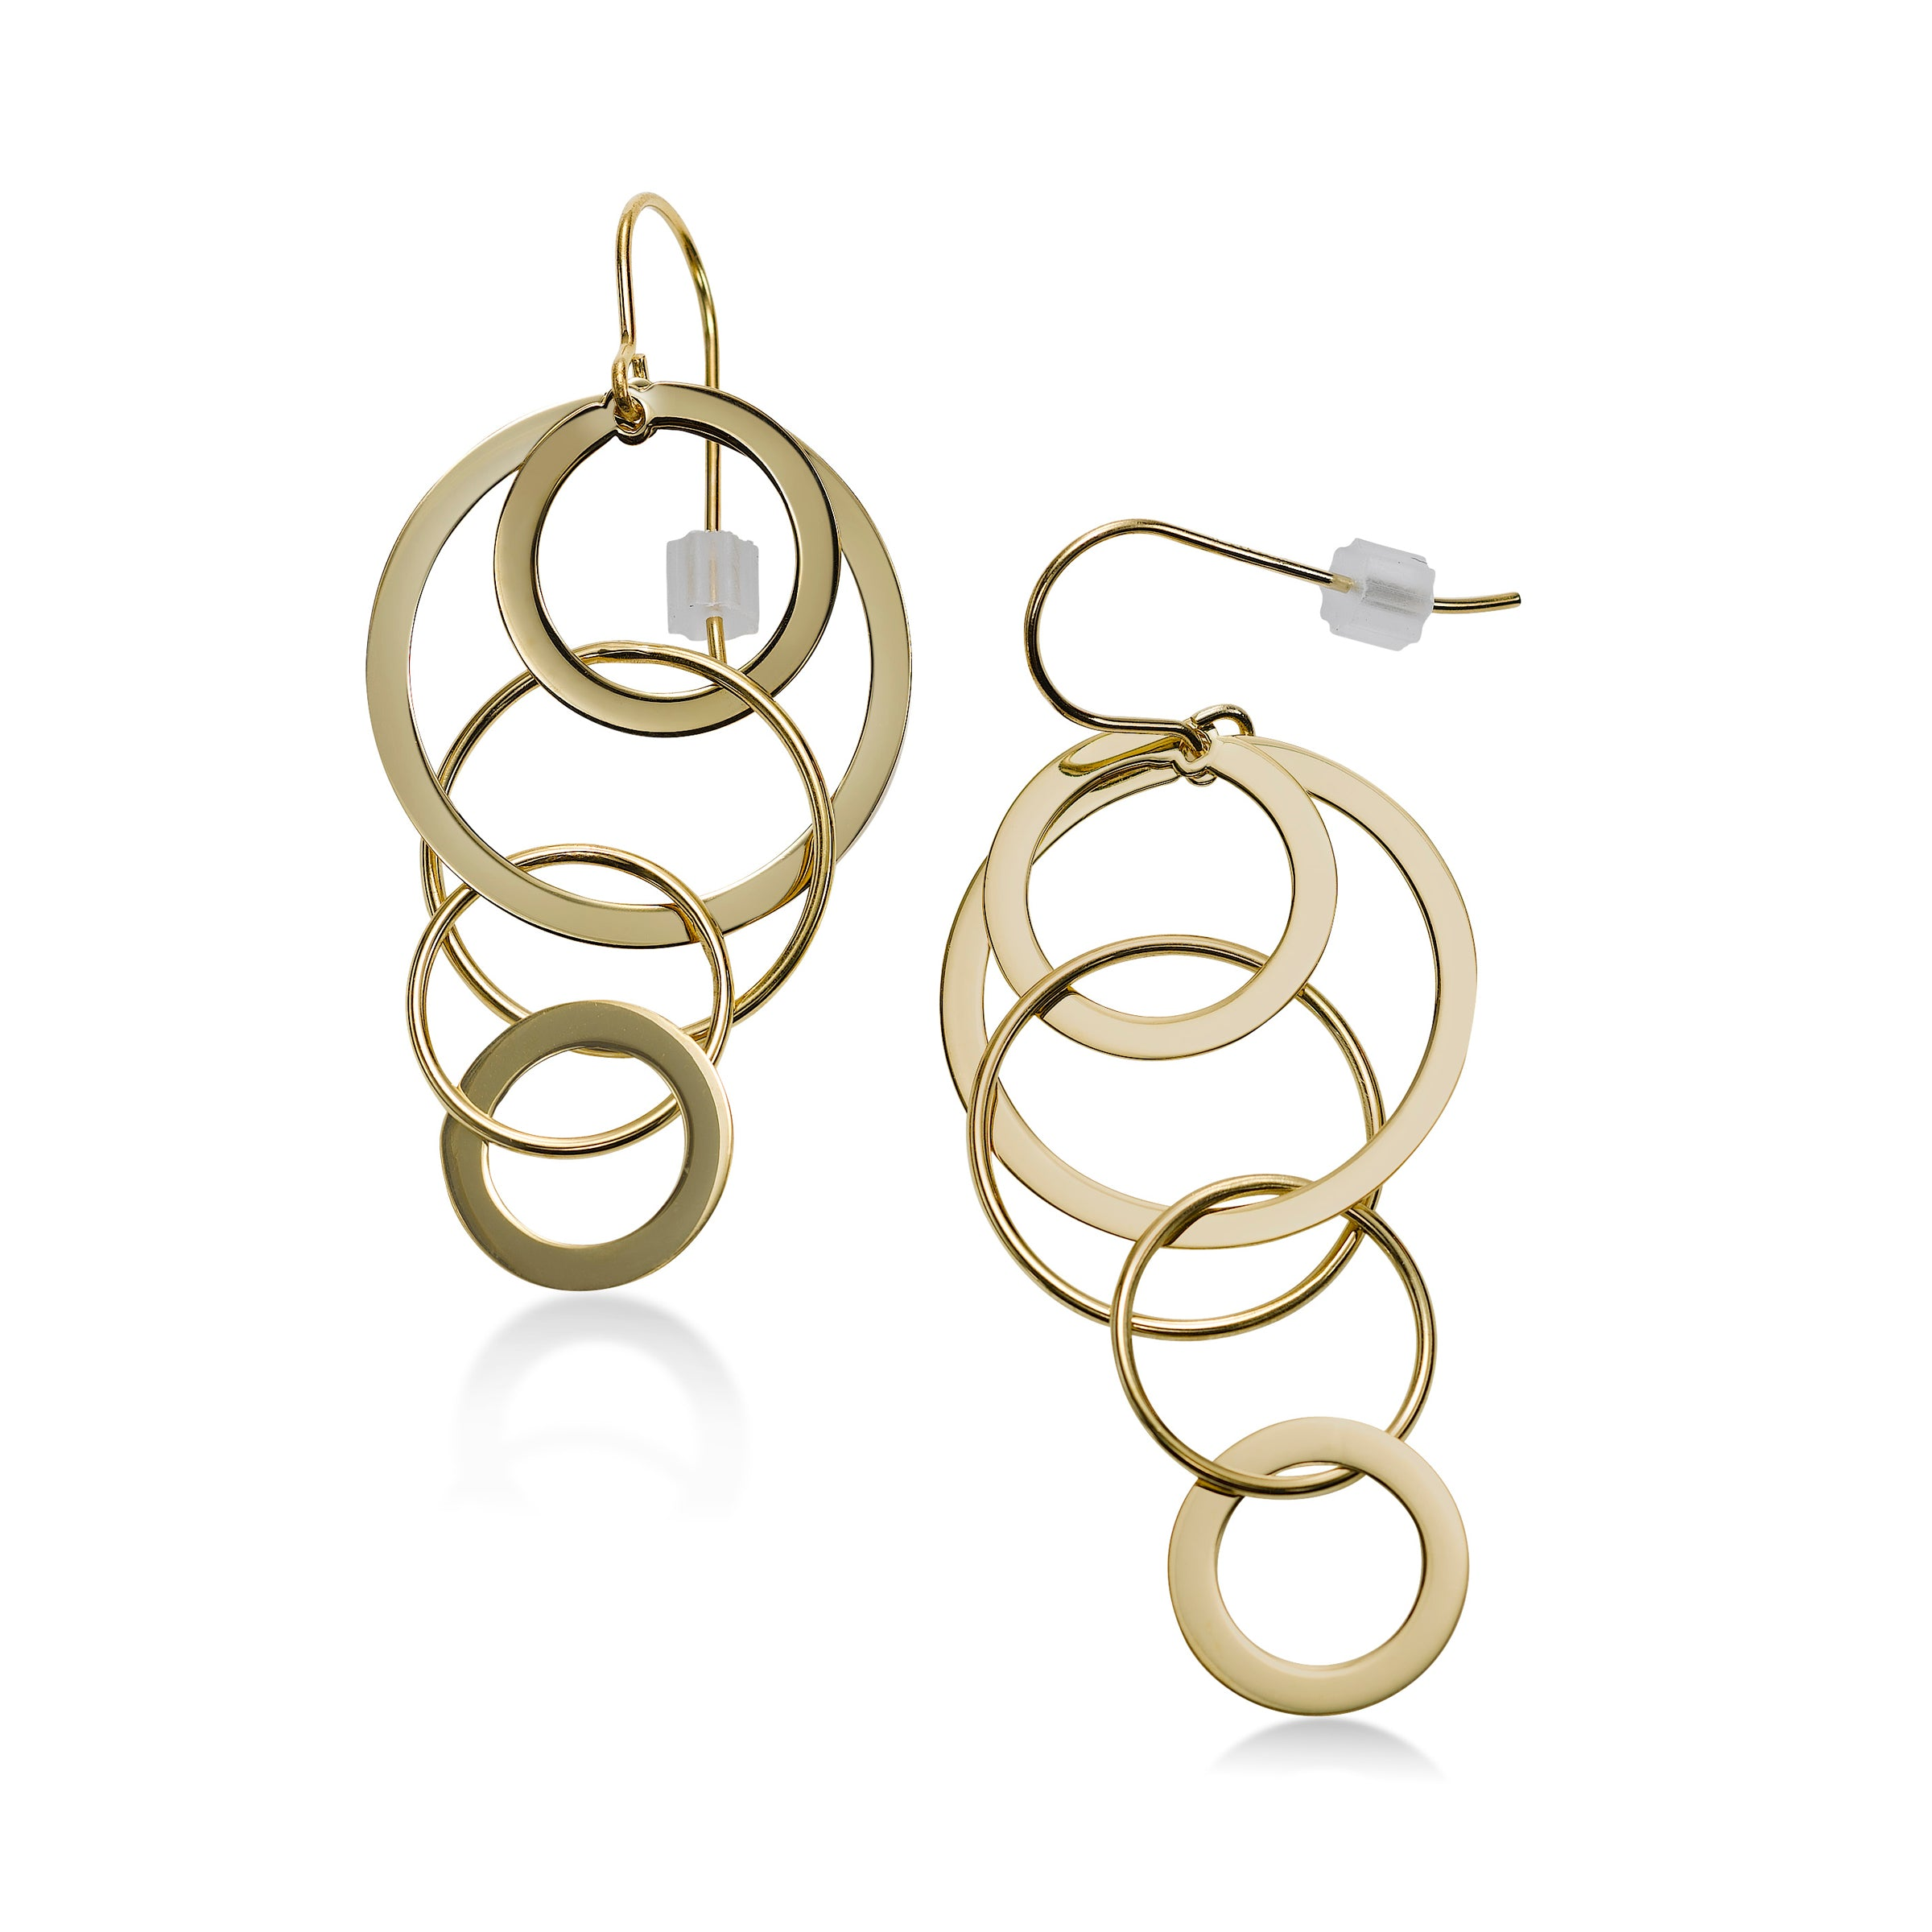 Cascading Circle Earrings, 14K Yellow Gold